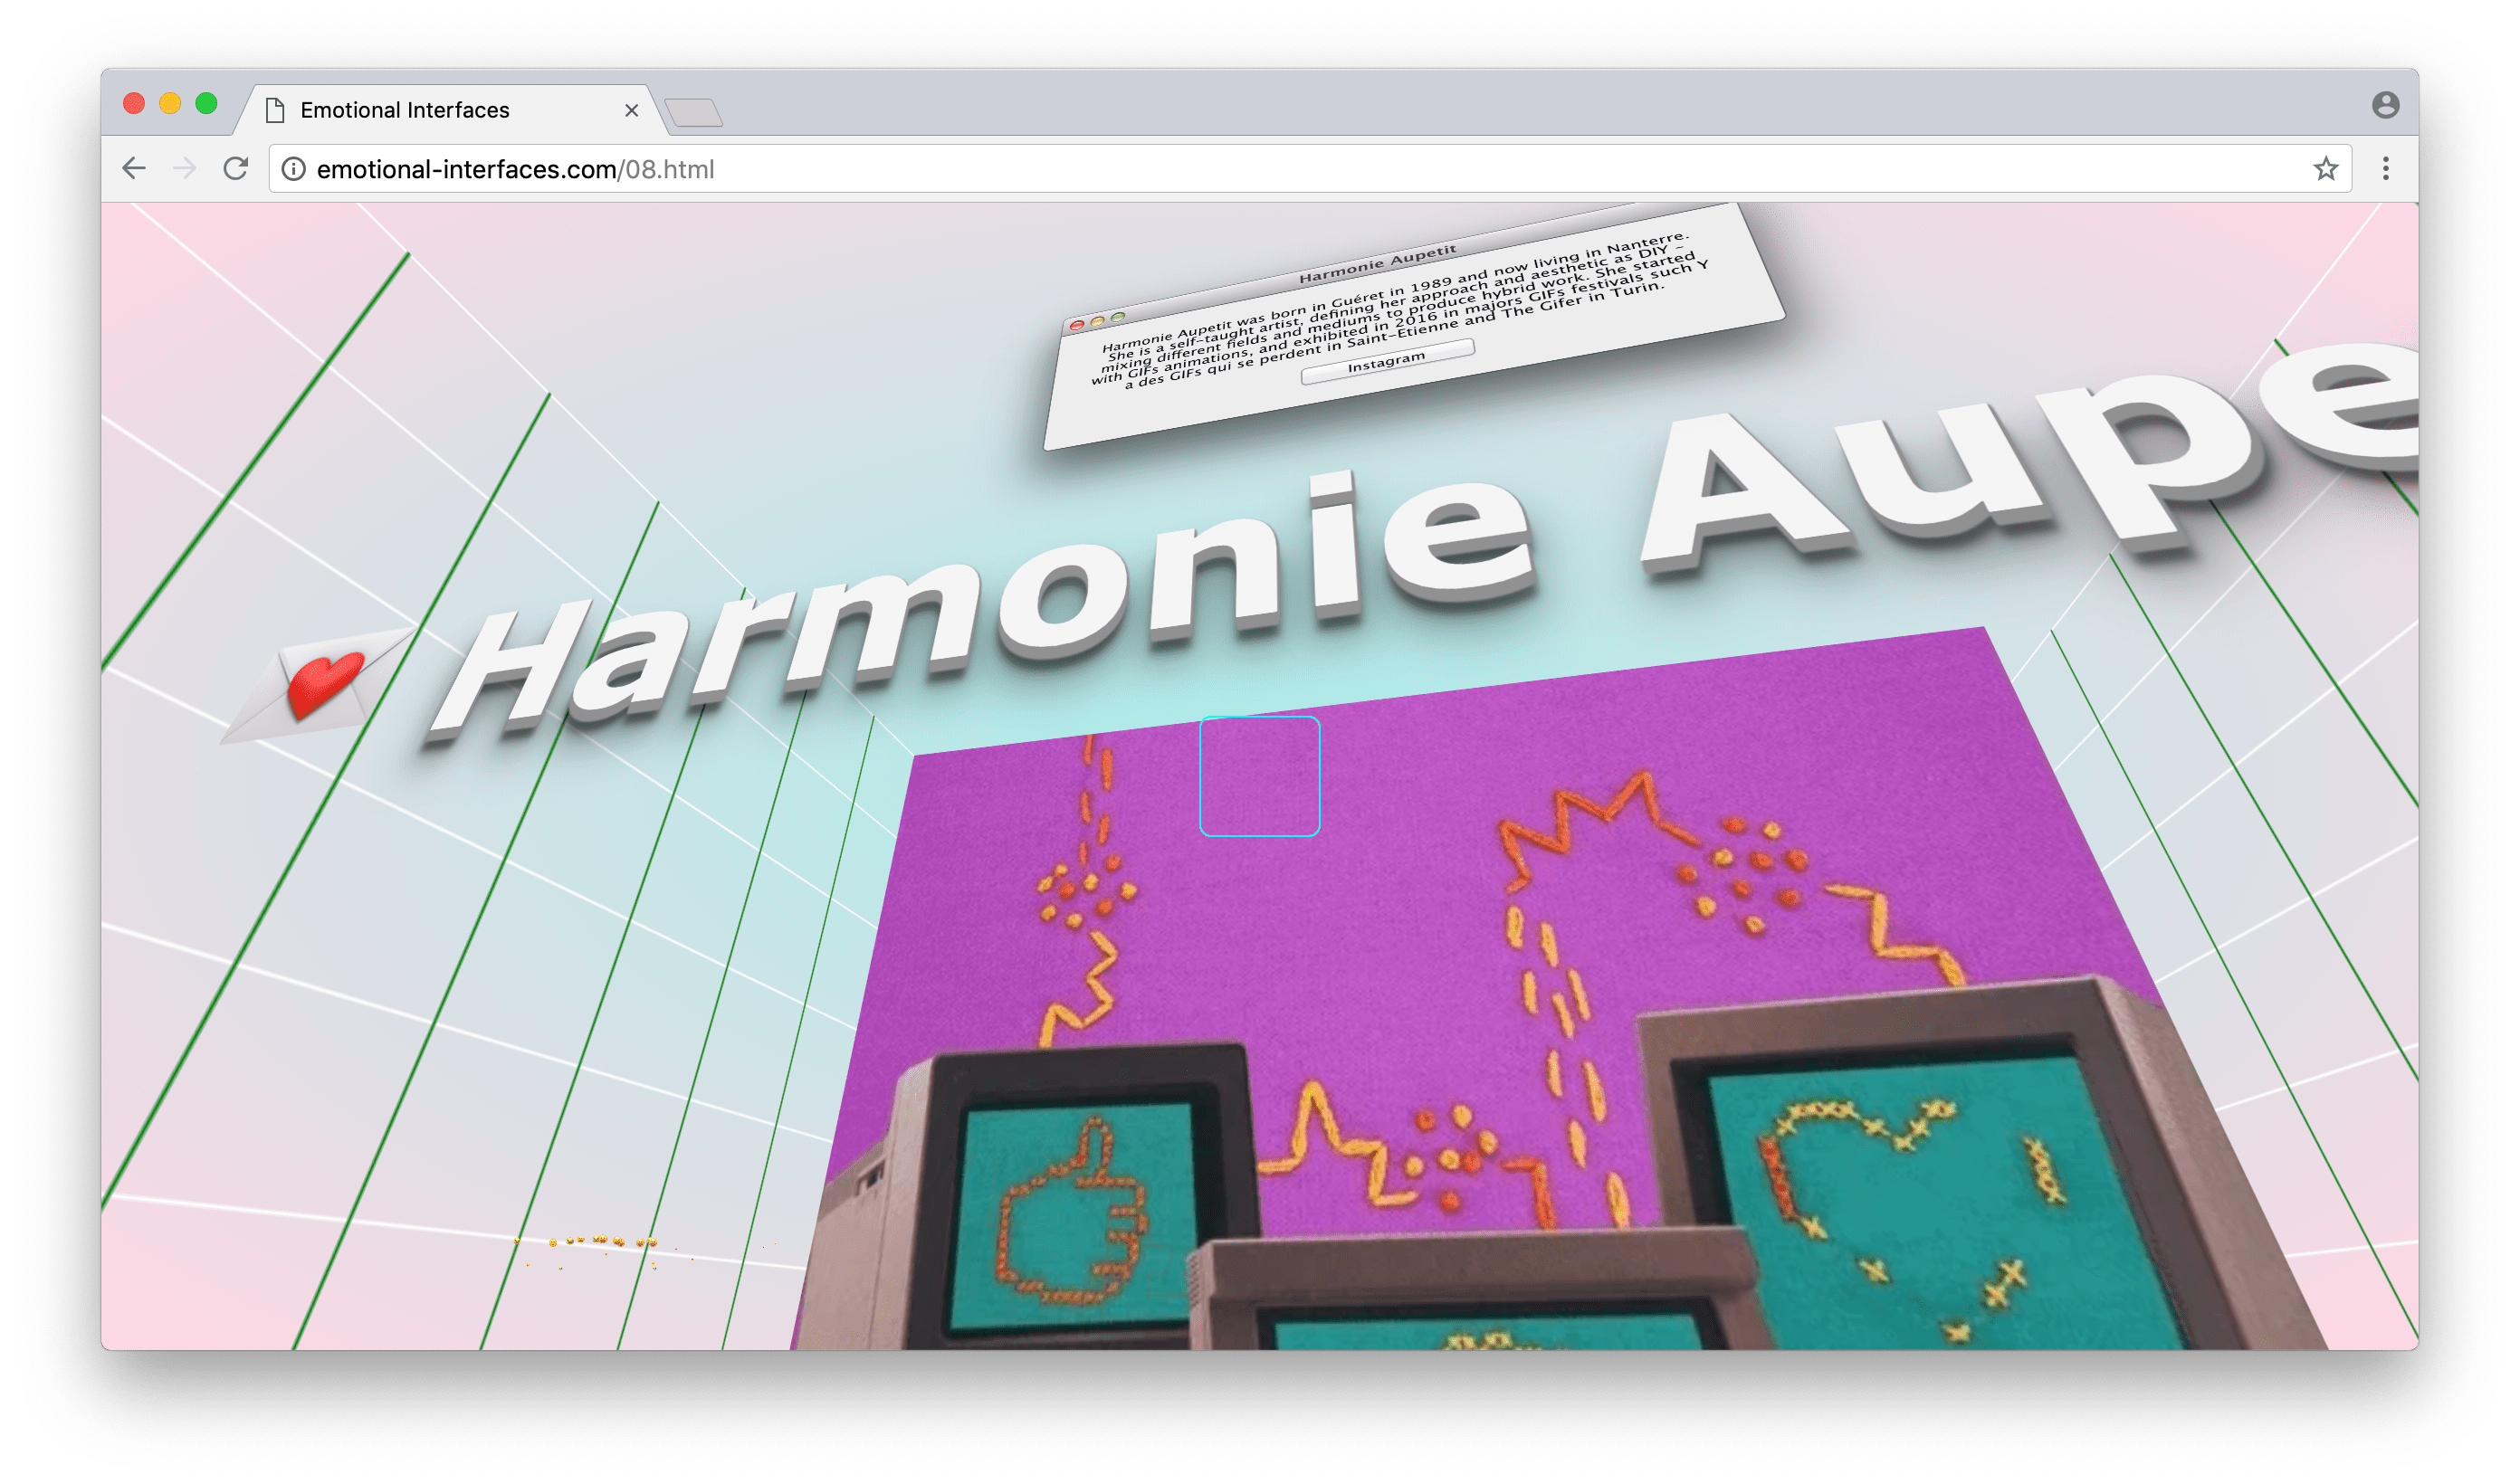 Harmonie Aupetit at Emotional Interfaces' online exhibition